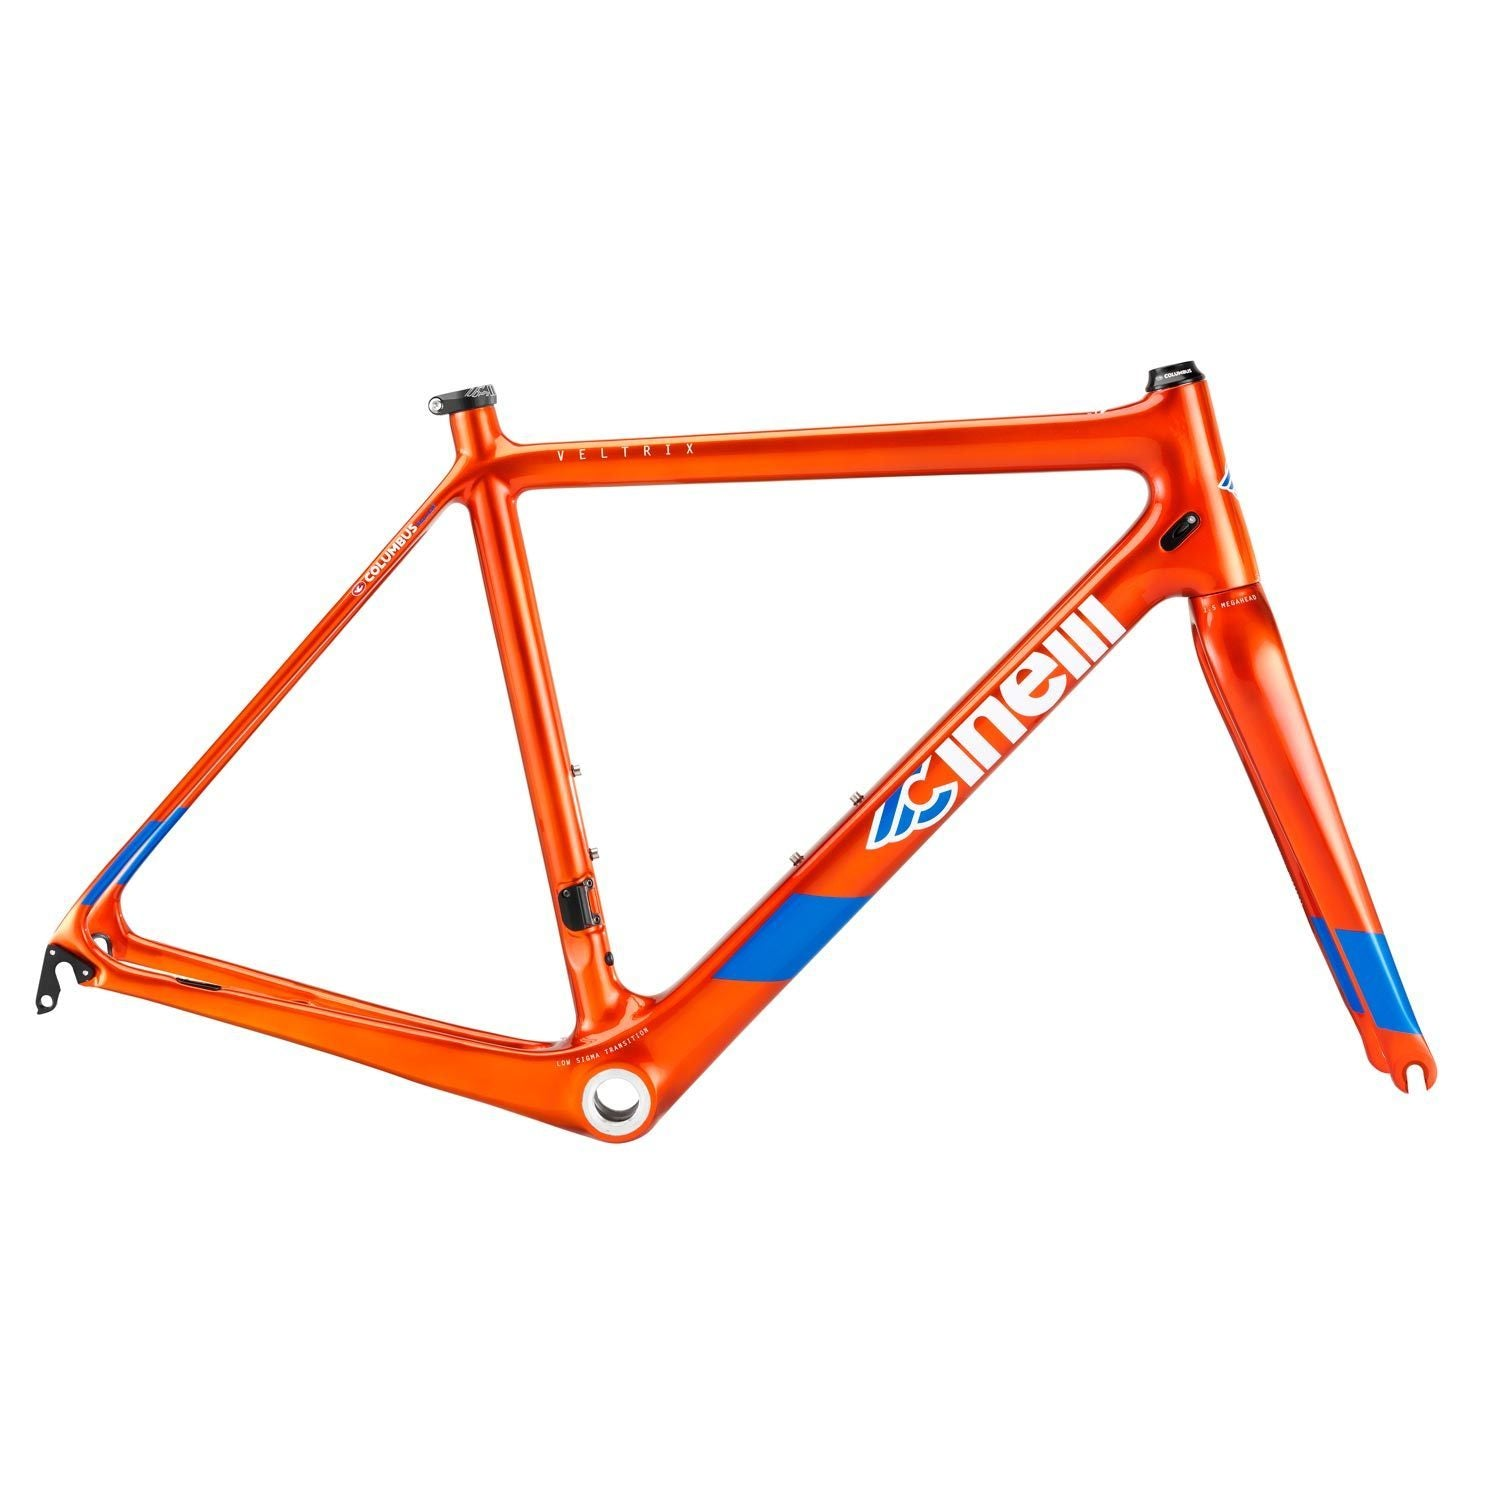 Cinelli Components > Frames Cinelli Veltrix Caliper Orange Frameset